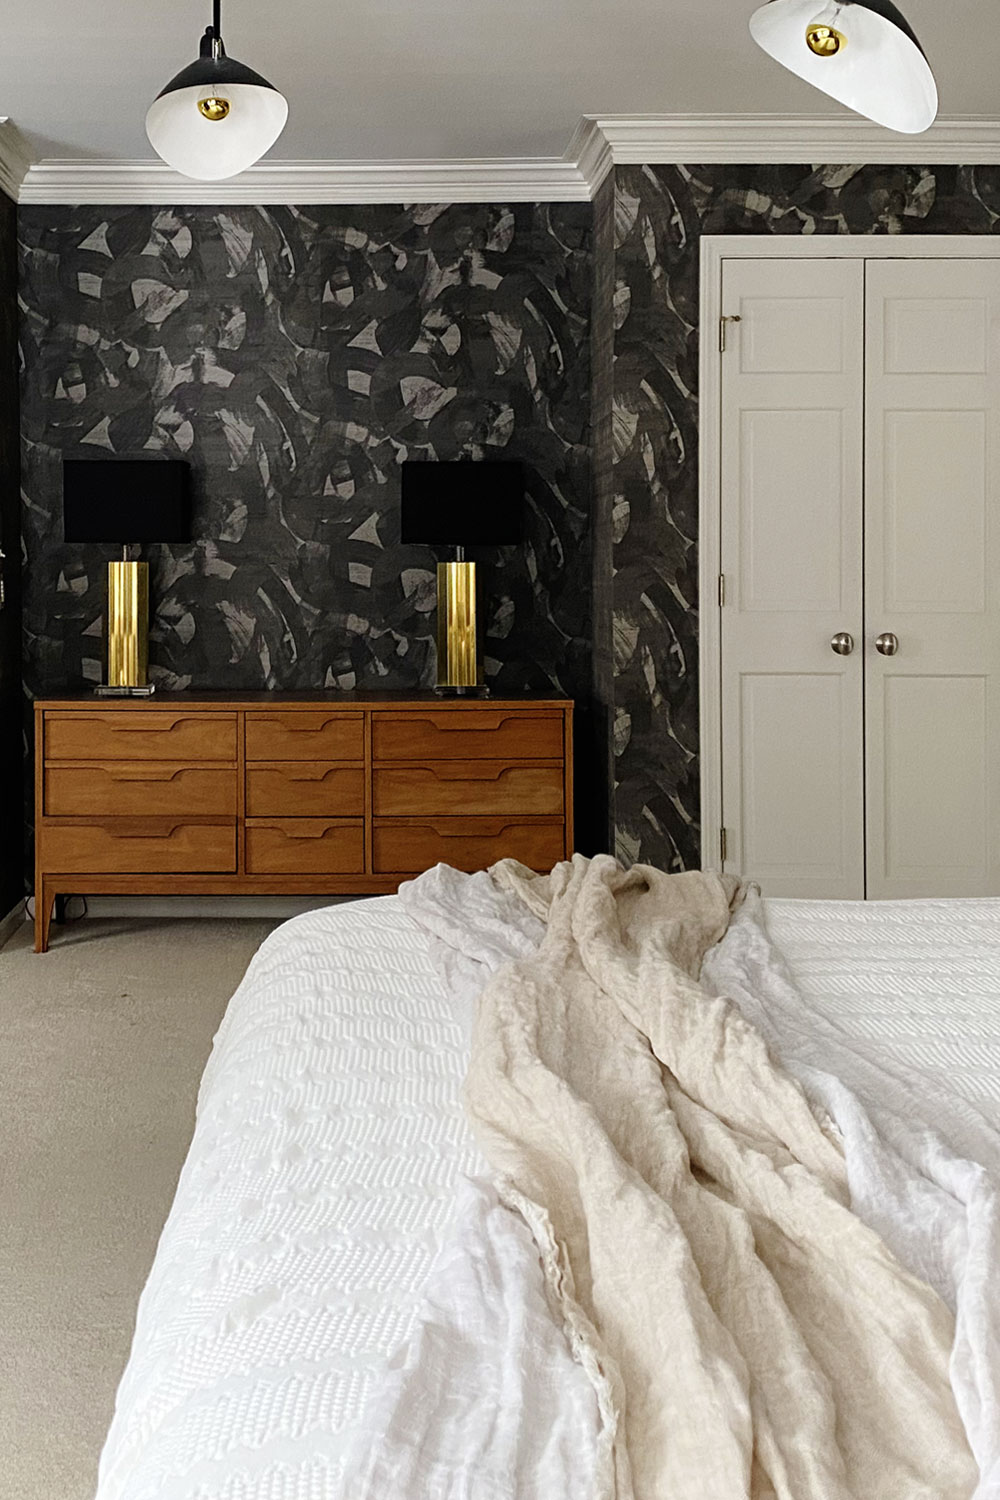 Black textured wallpaper in the bedroom with Phillips Jeffries Broad Strokes Scraffido Shadow. Luxury wallpaper in the primary bedroom to create a bold moody statement.